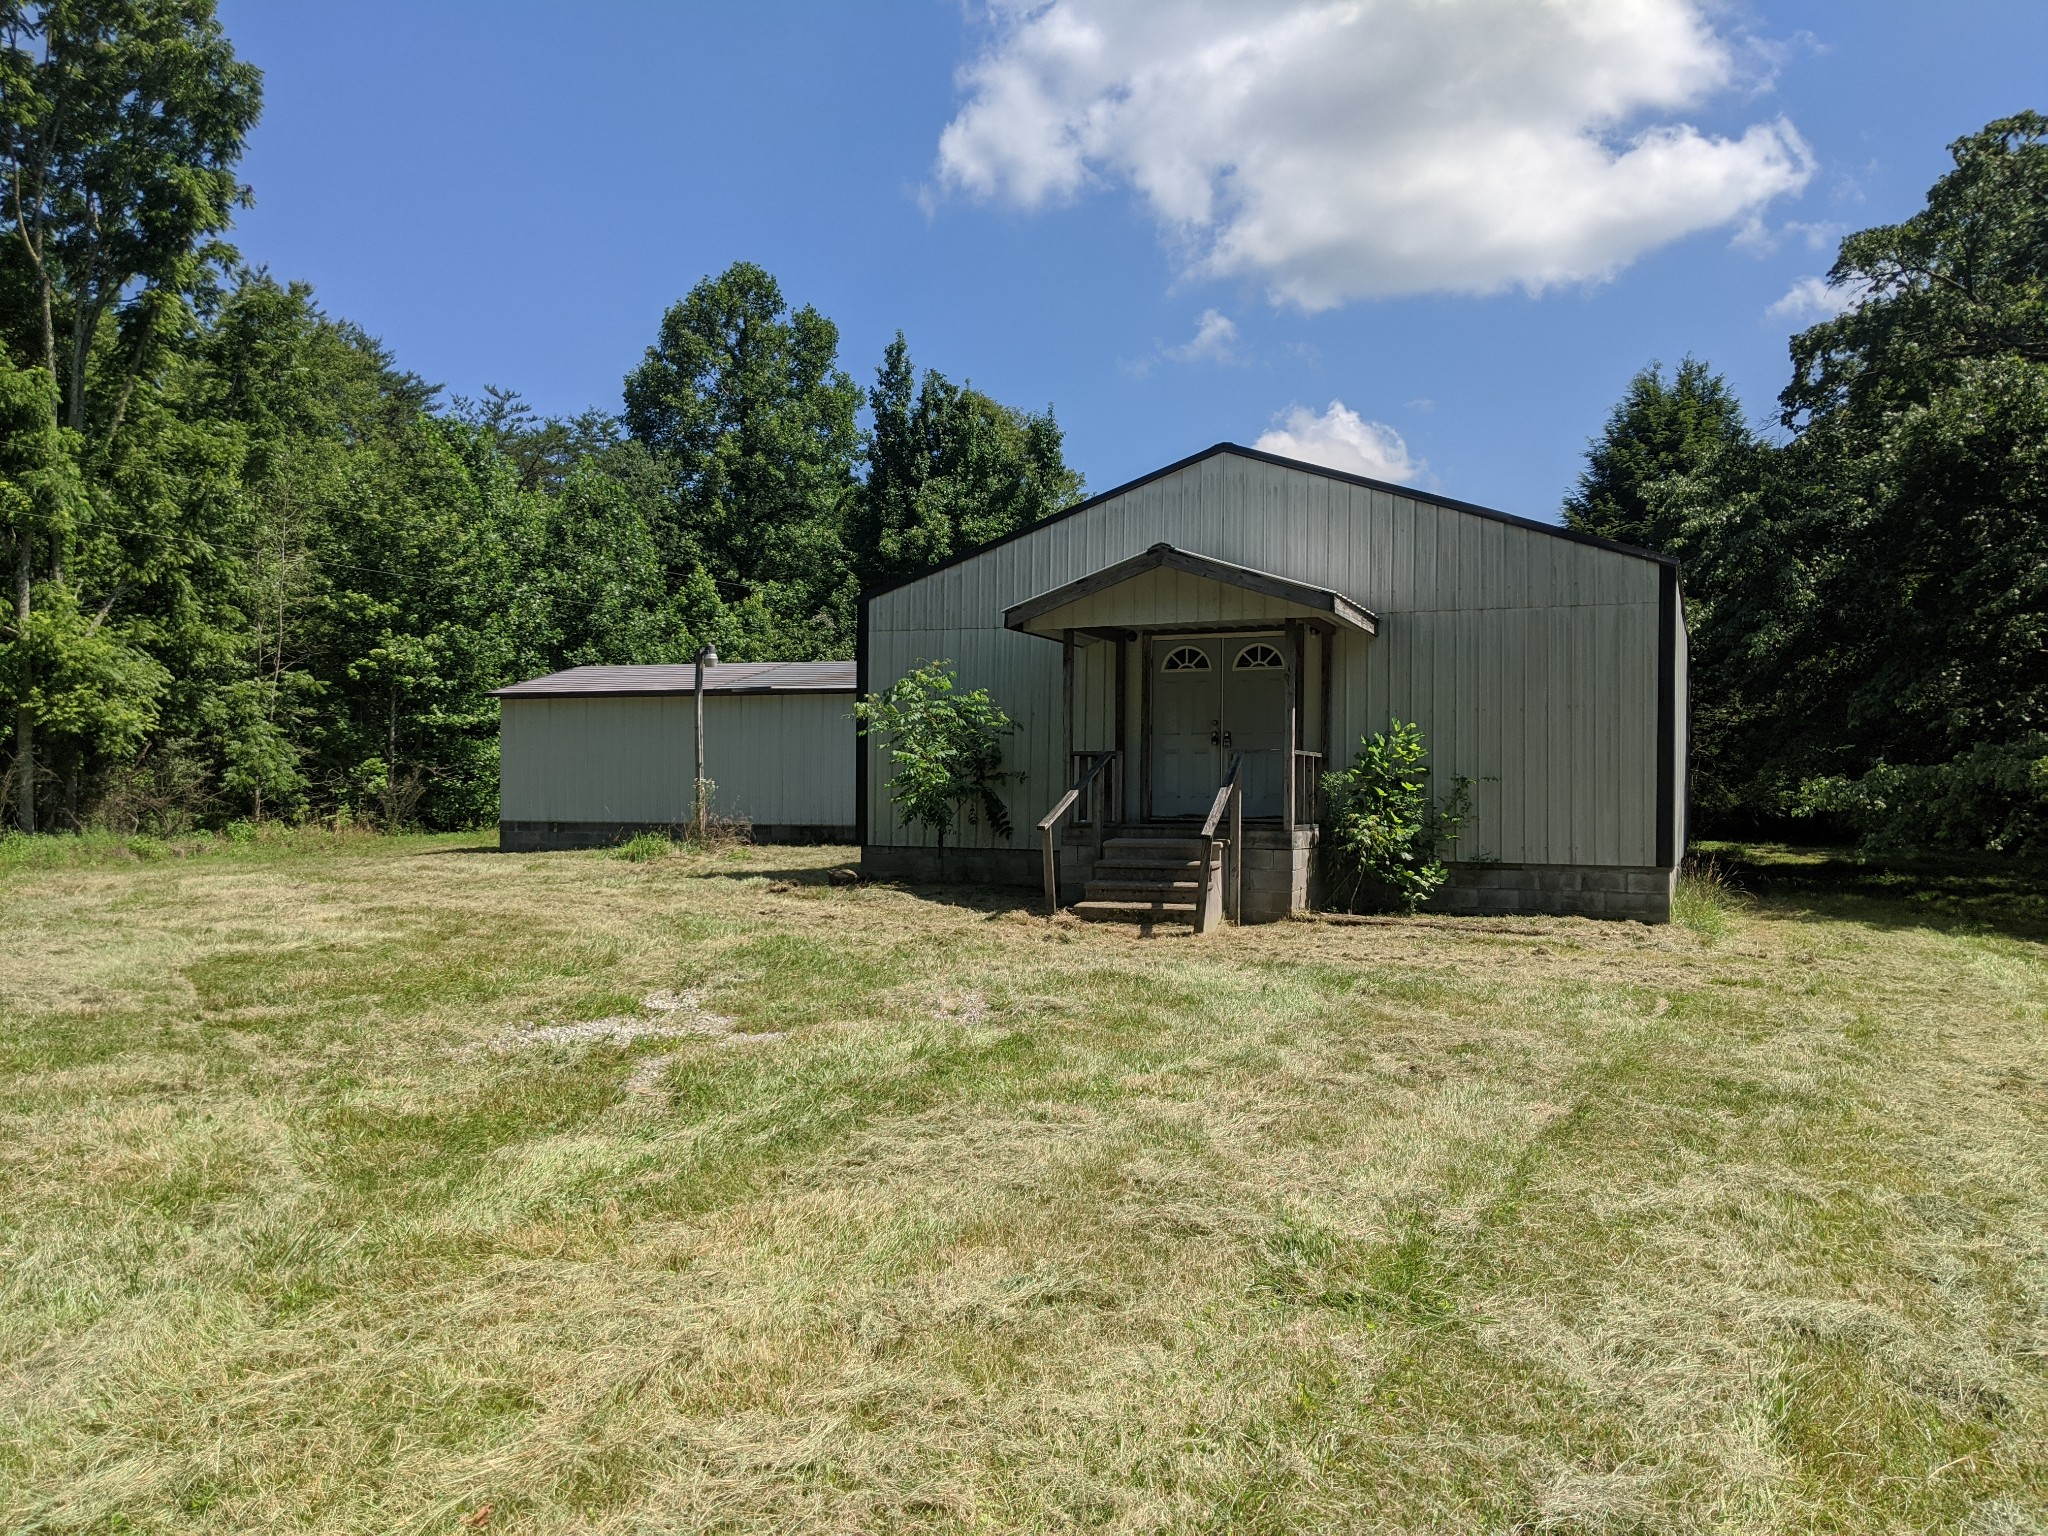 0 Freemont Rd, Coalmont, TN 37313 - Coalmont, TN real estate listing